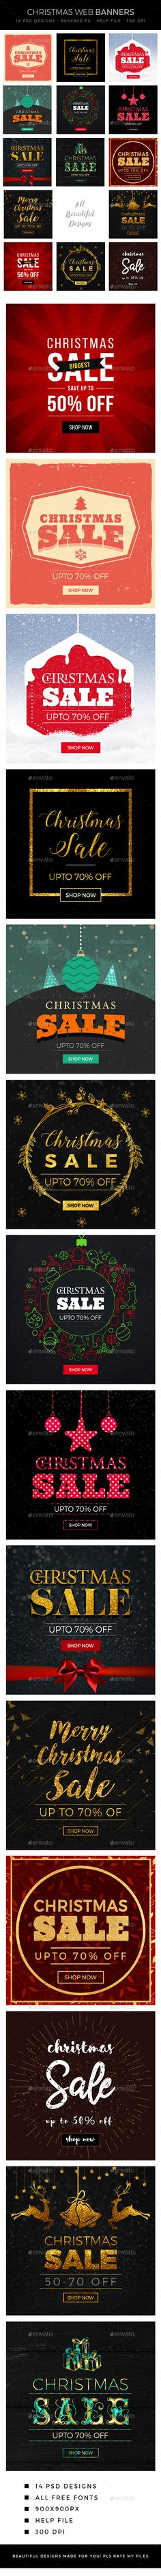 Christmas Sale Banners — Photoshop PSD #shop #cyber monday • Download ➝ https://graphicriver.net/item/christmas-sale-banners/18962189?ref=pxcr